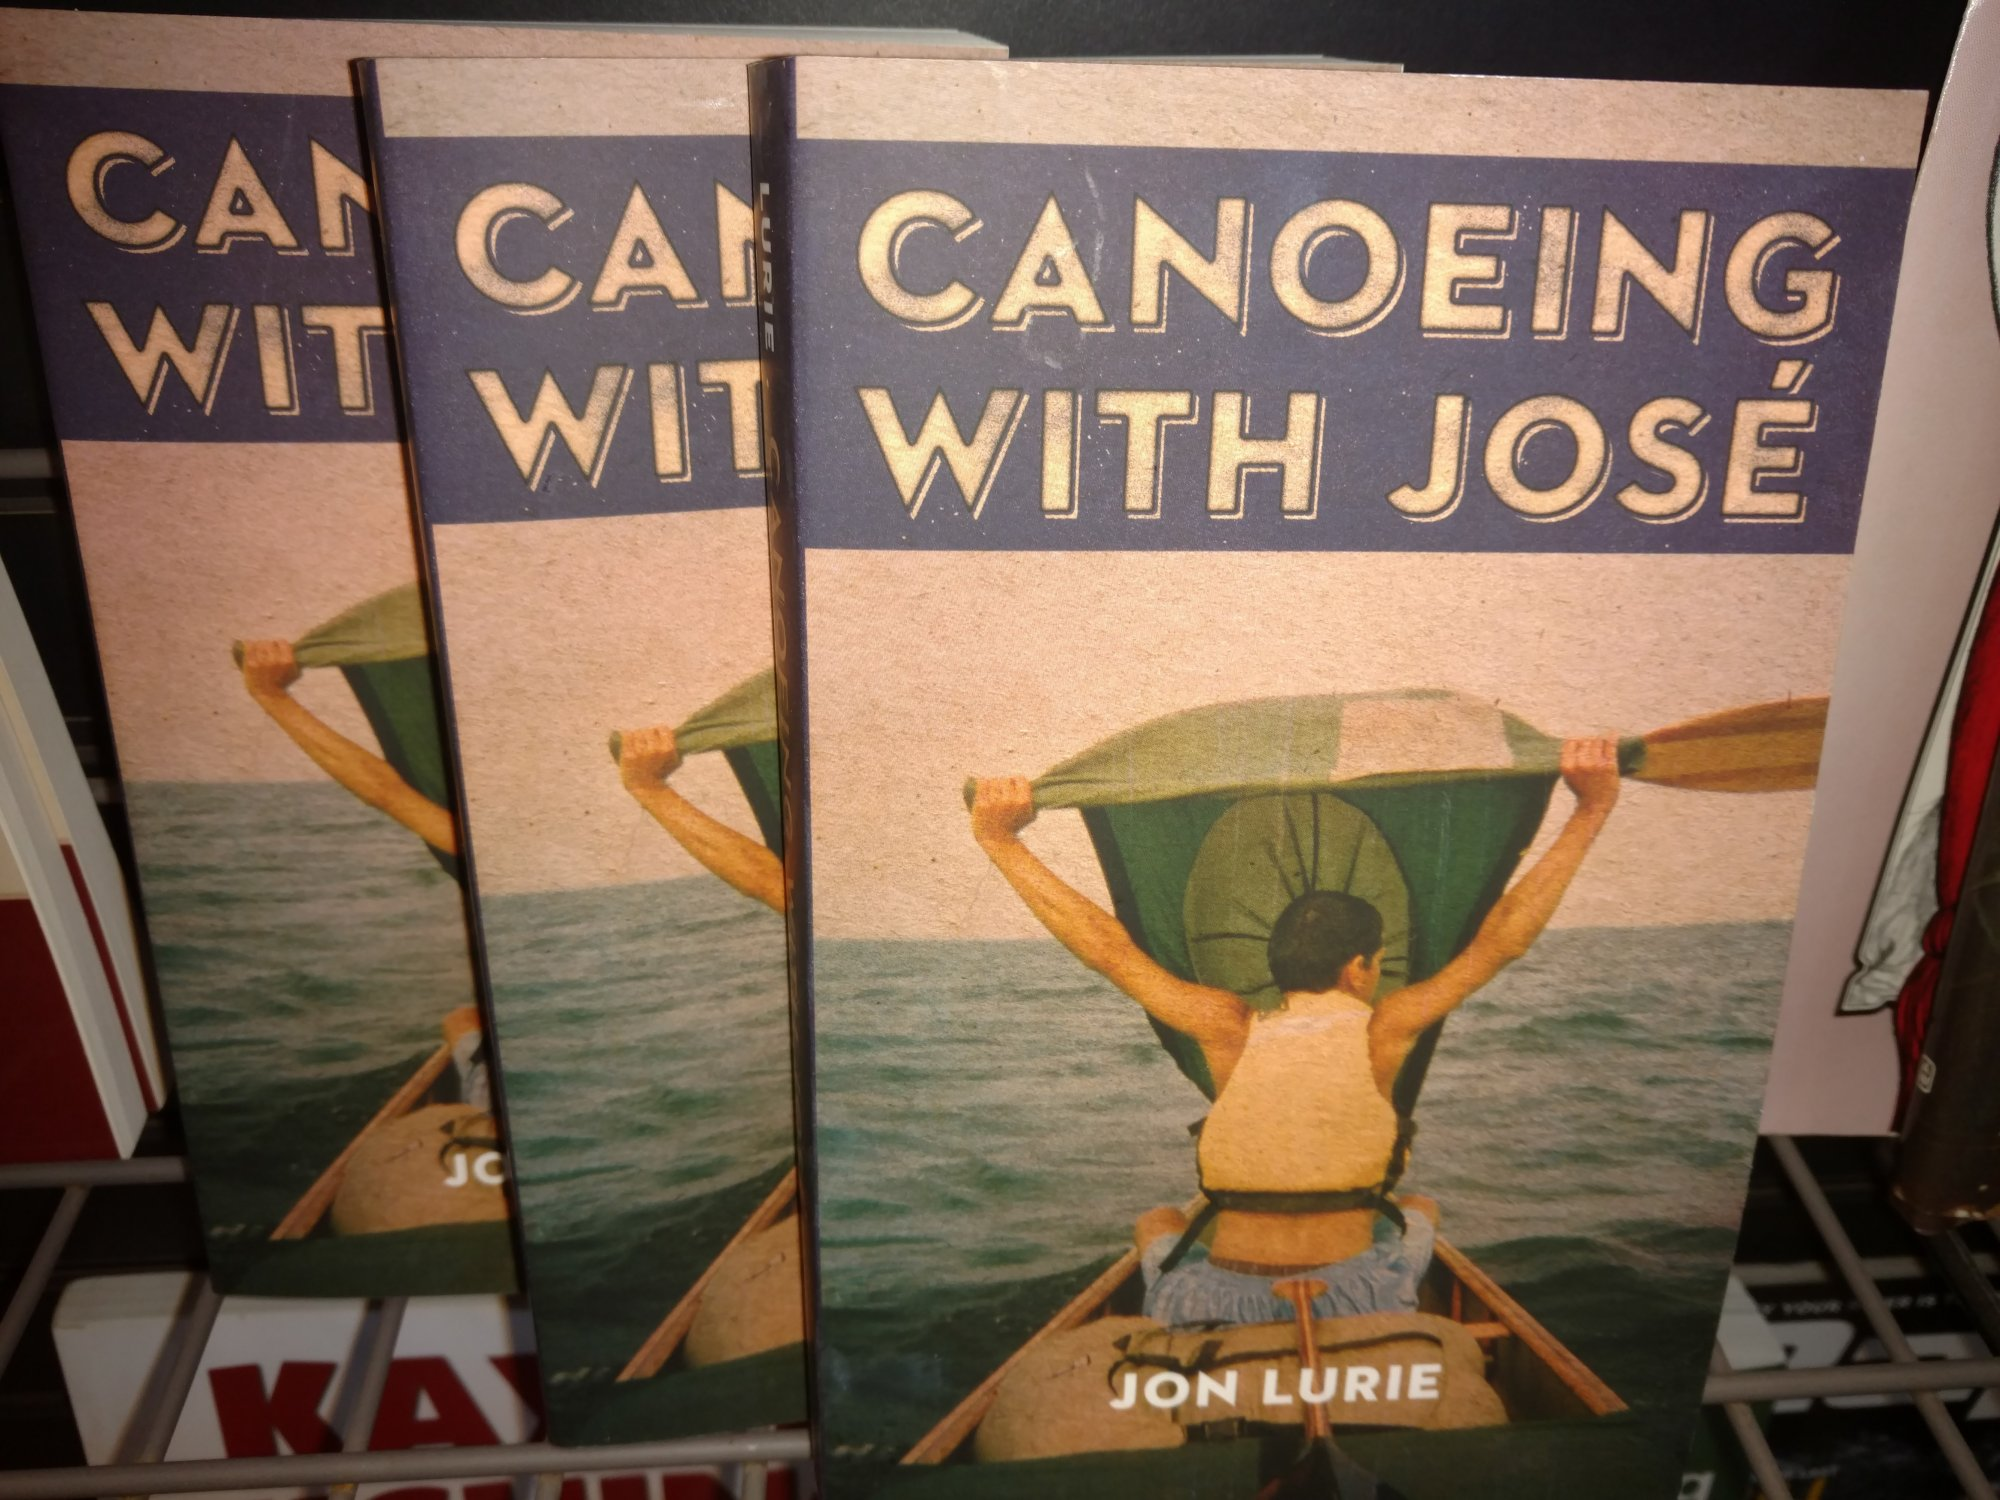 Book Canoeing with Jose'